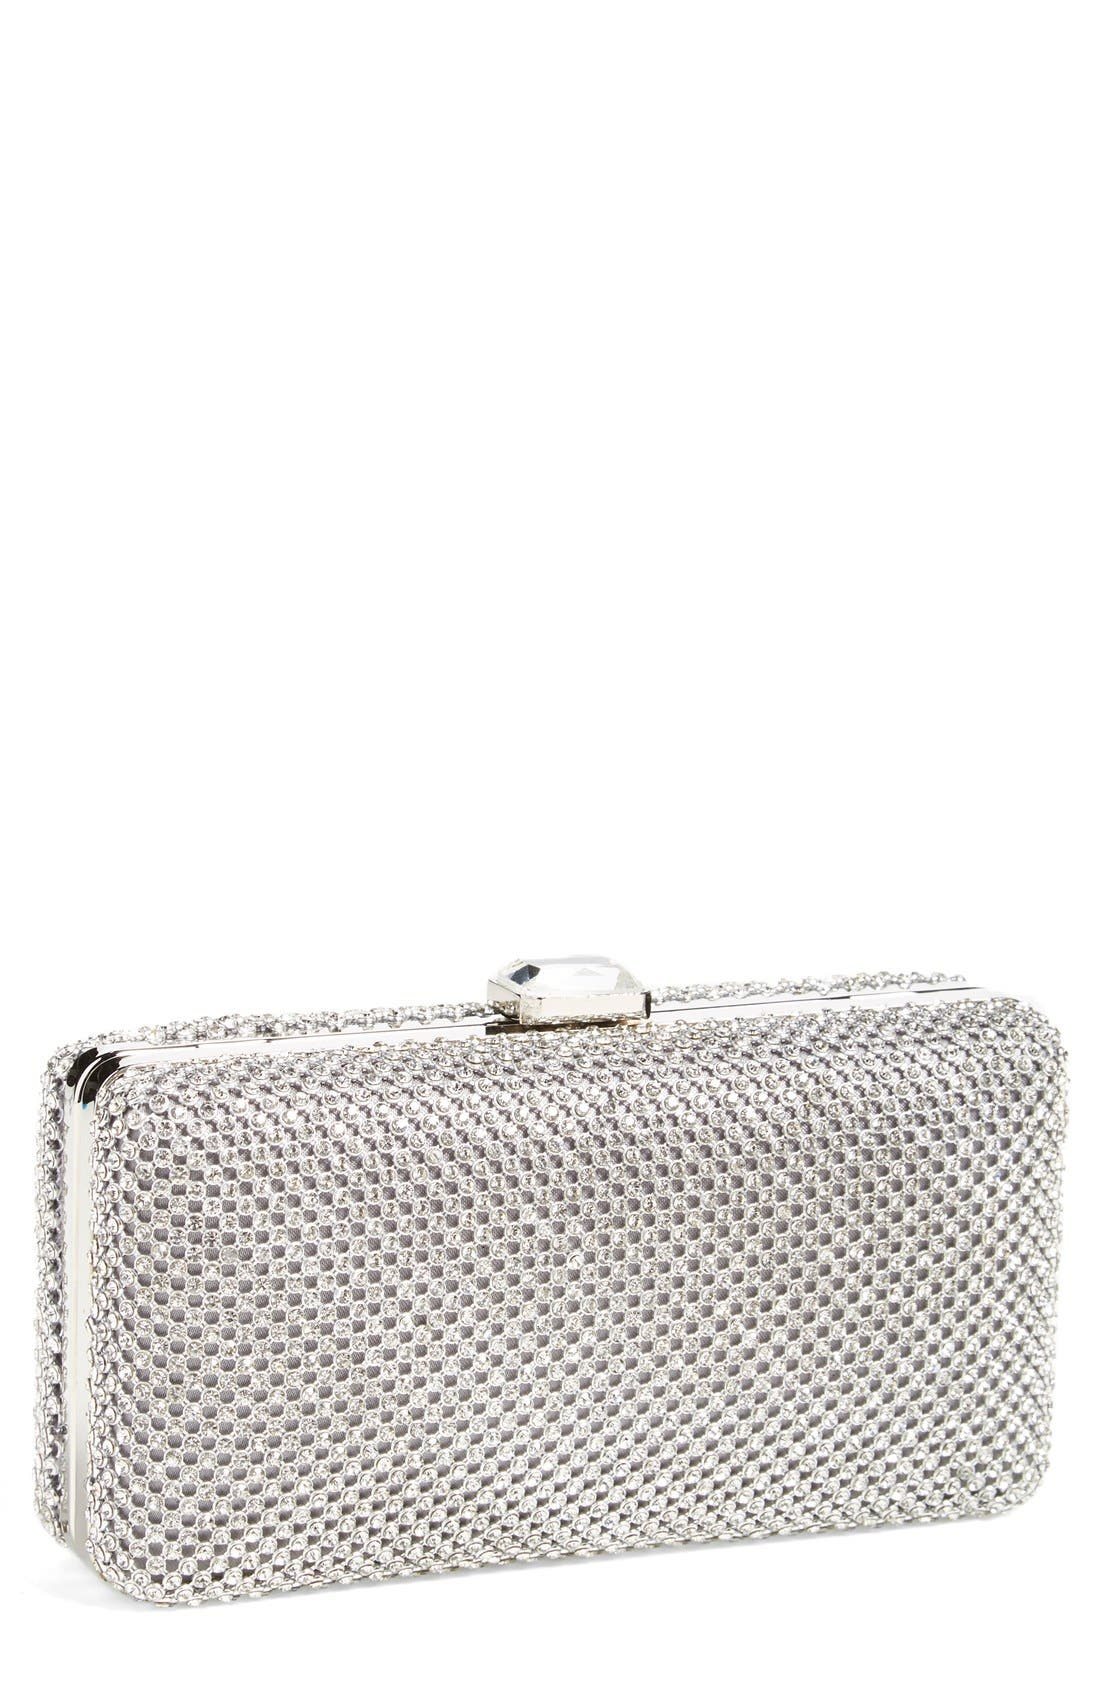 Alternate Image 1 Selected - Sondra Roberts Crystal Mesh Box Clutch